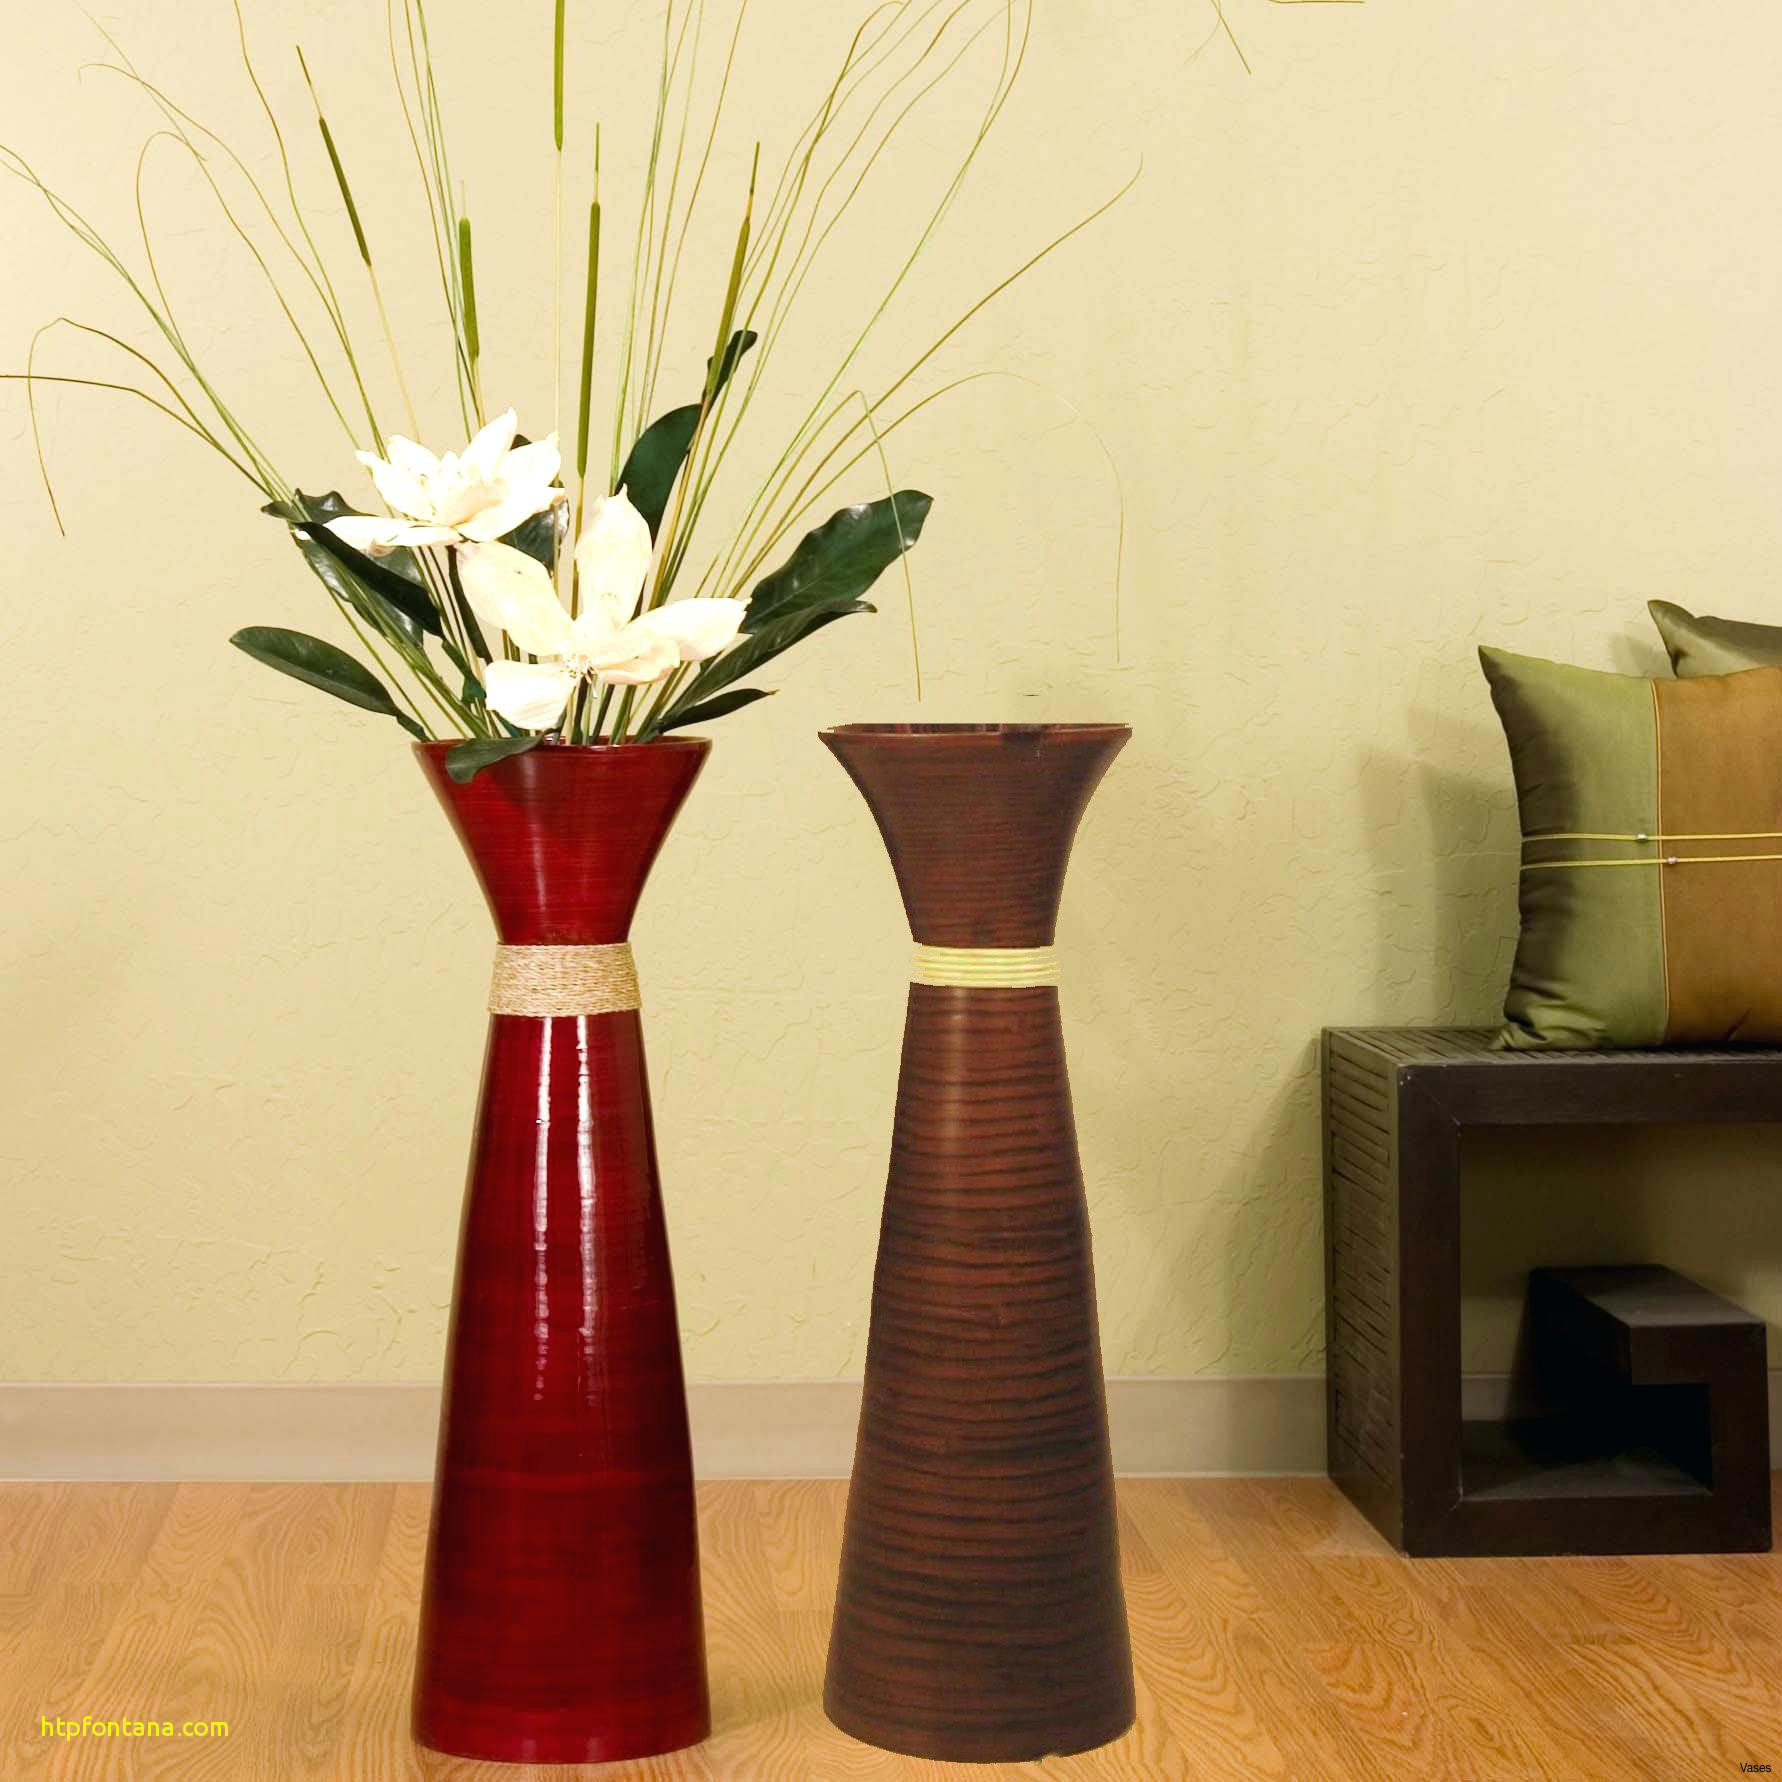 decorative vases with lids of living room decor vases best of decorative colorful red sticks in a regarding living room decor vases best of vases decorative colorful red sticks in a vase i 0d